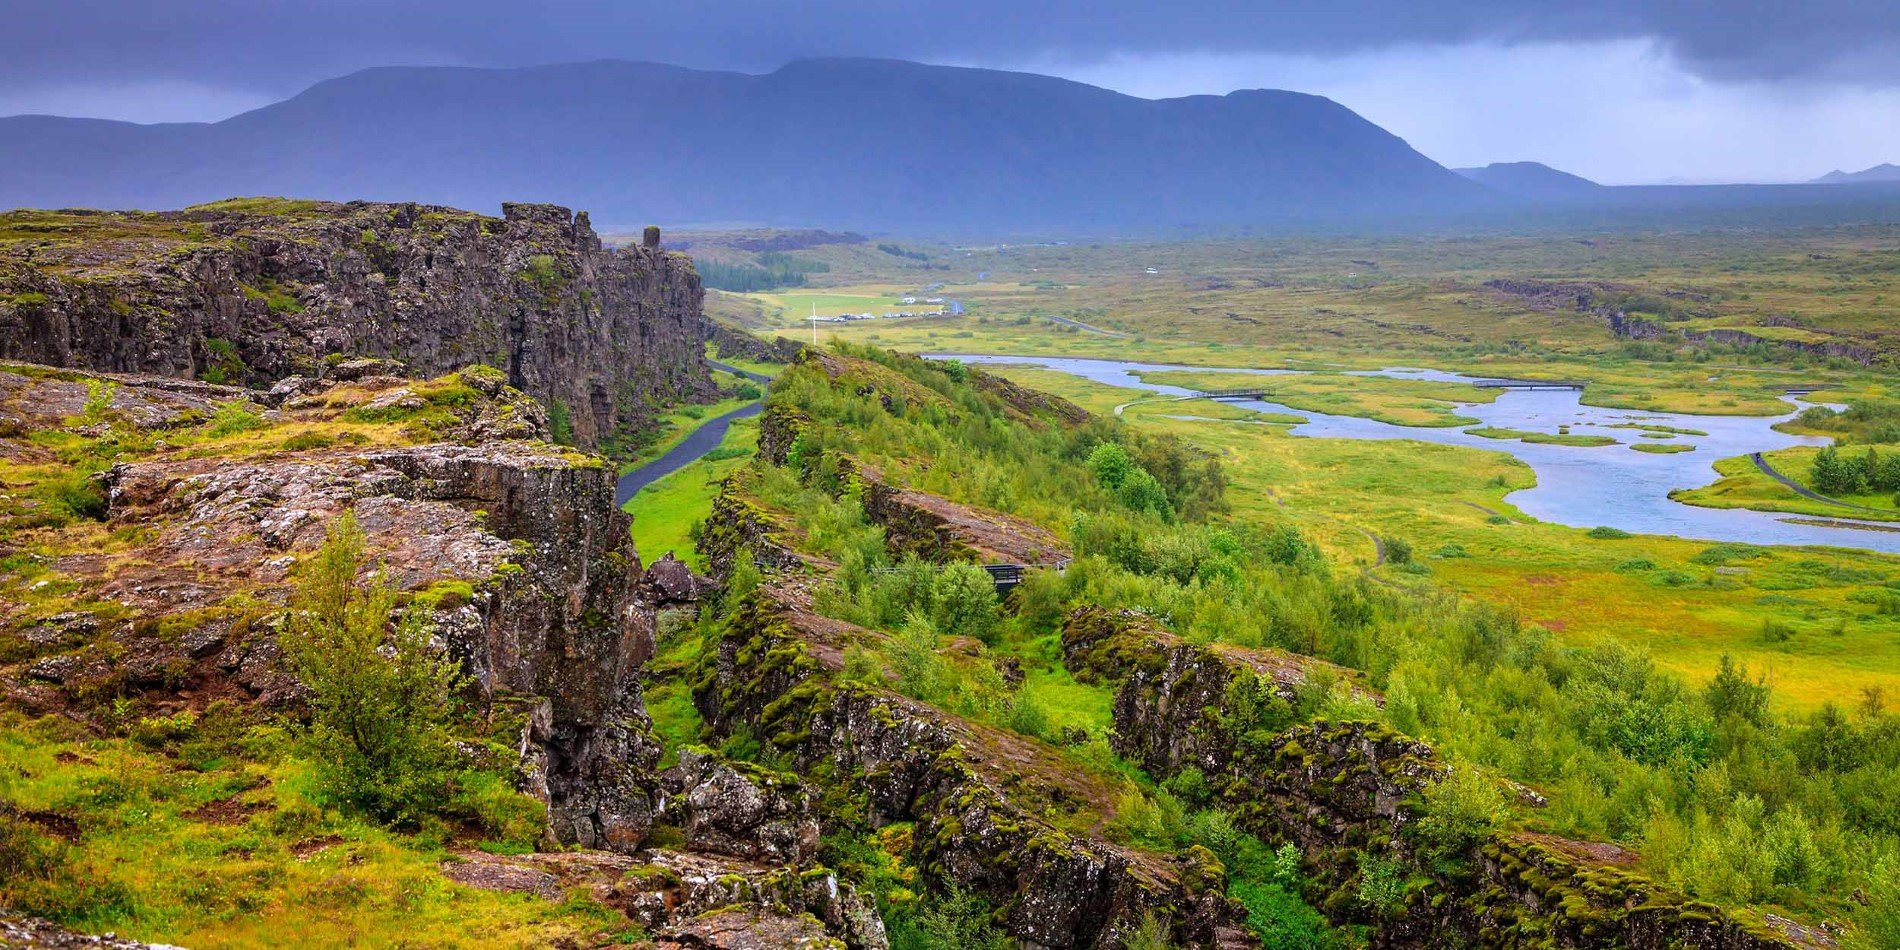 Thingvellir_National_Park©Shutterstock_2500x1250.jpg